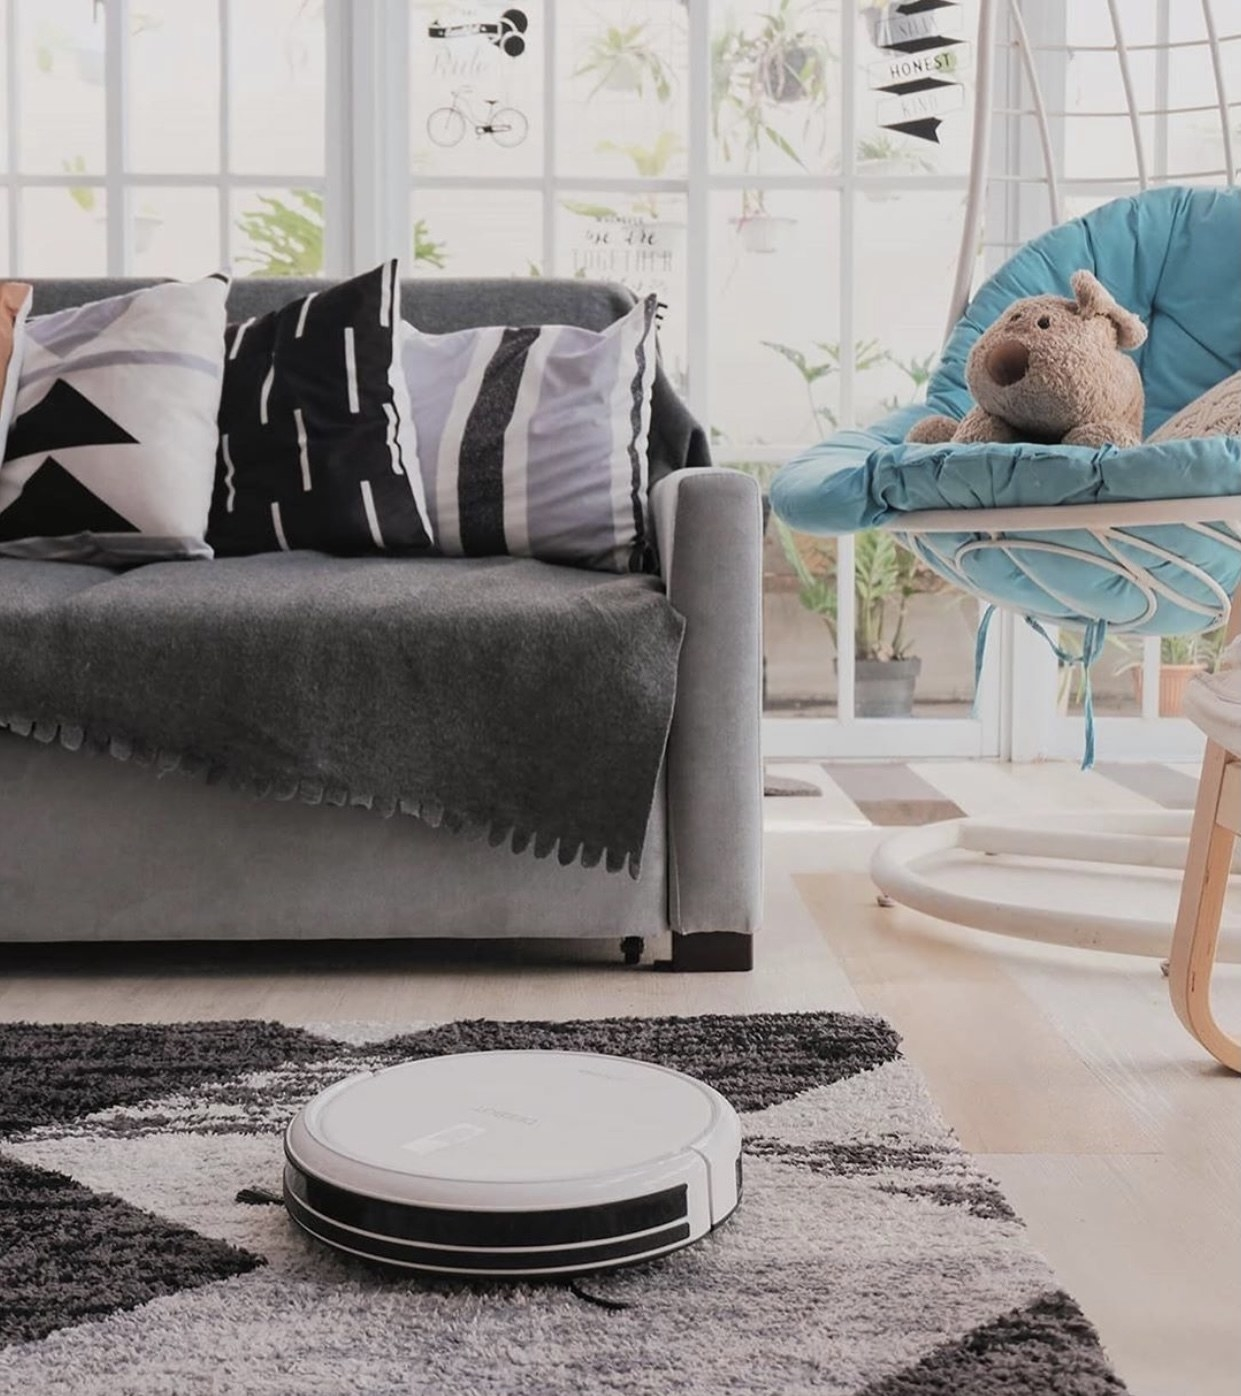 A white robotic vacuum cleans a carpet in a living room